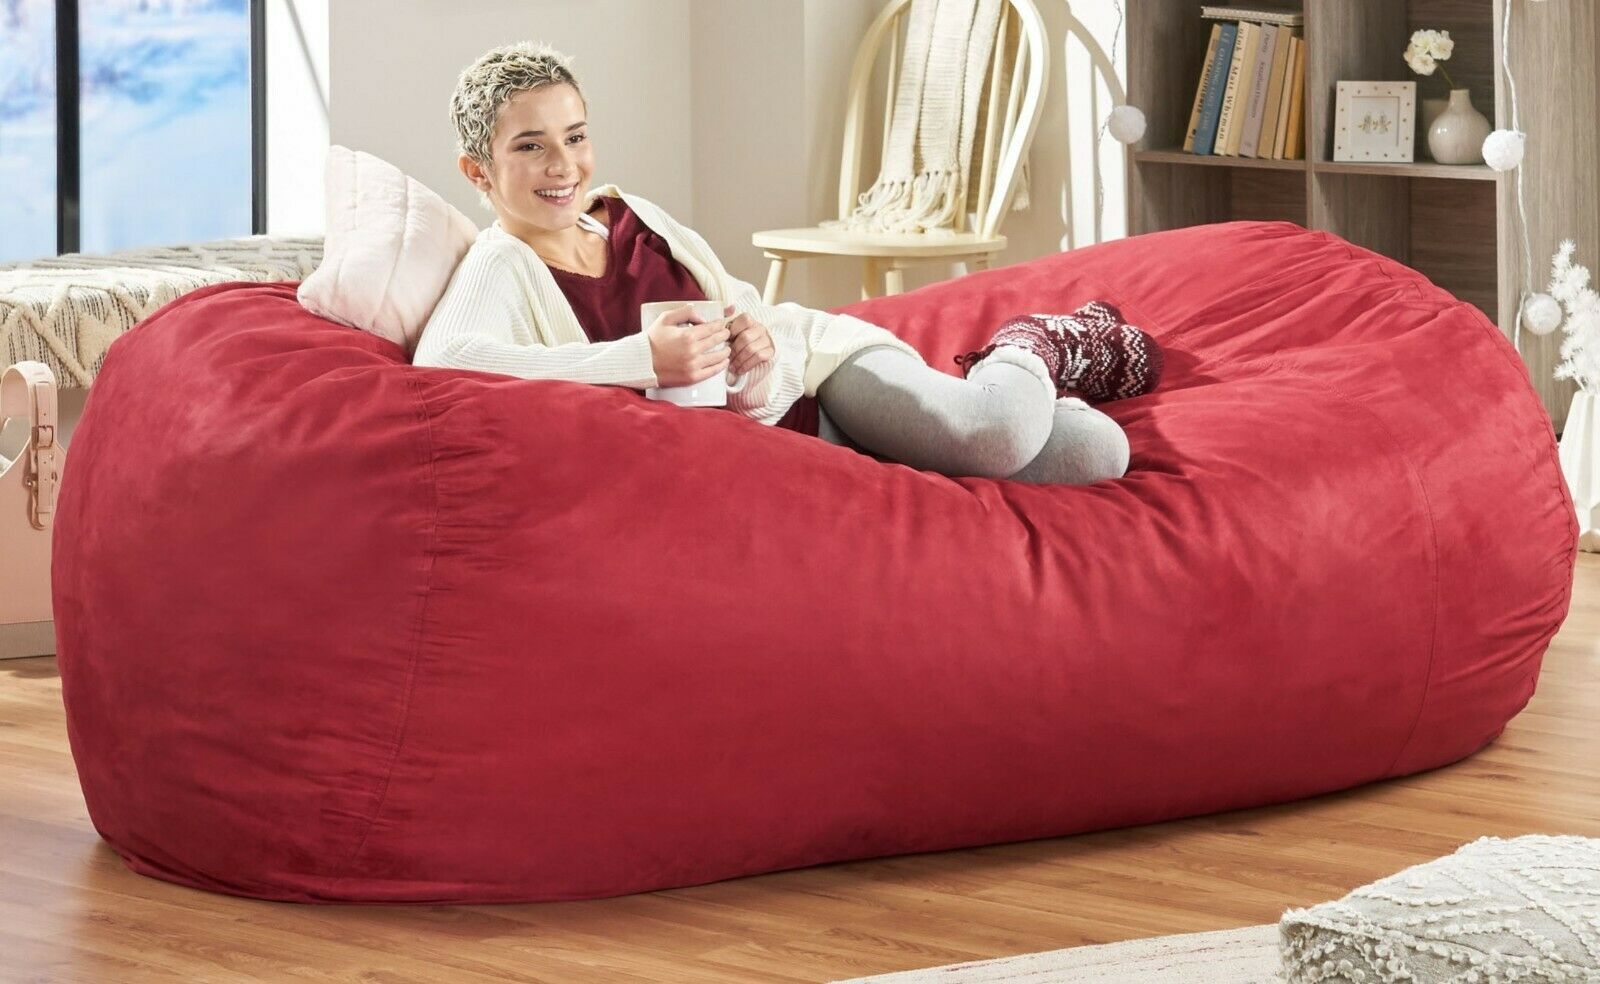 Bean Bag Chair 8 Foot Lounger Soft Love Sac Large Bedroom Kids Adult Lounge Red For Sale Online